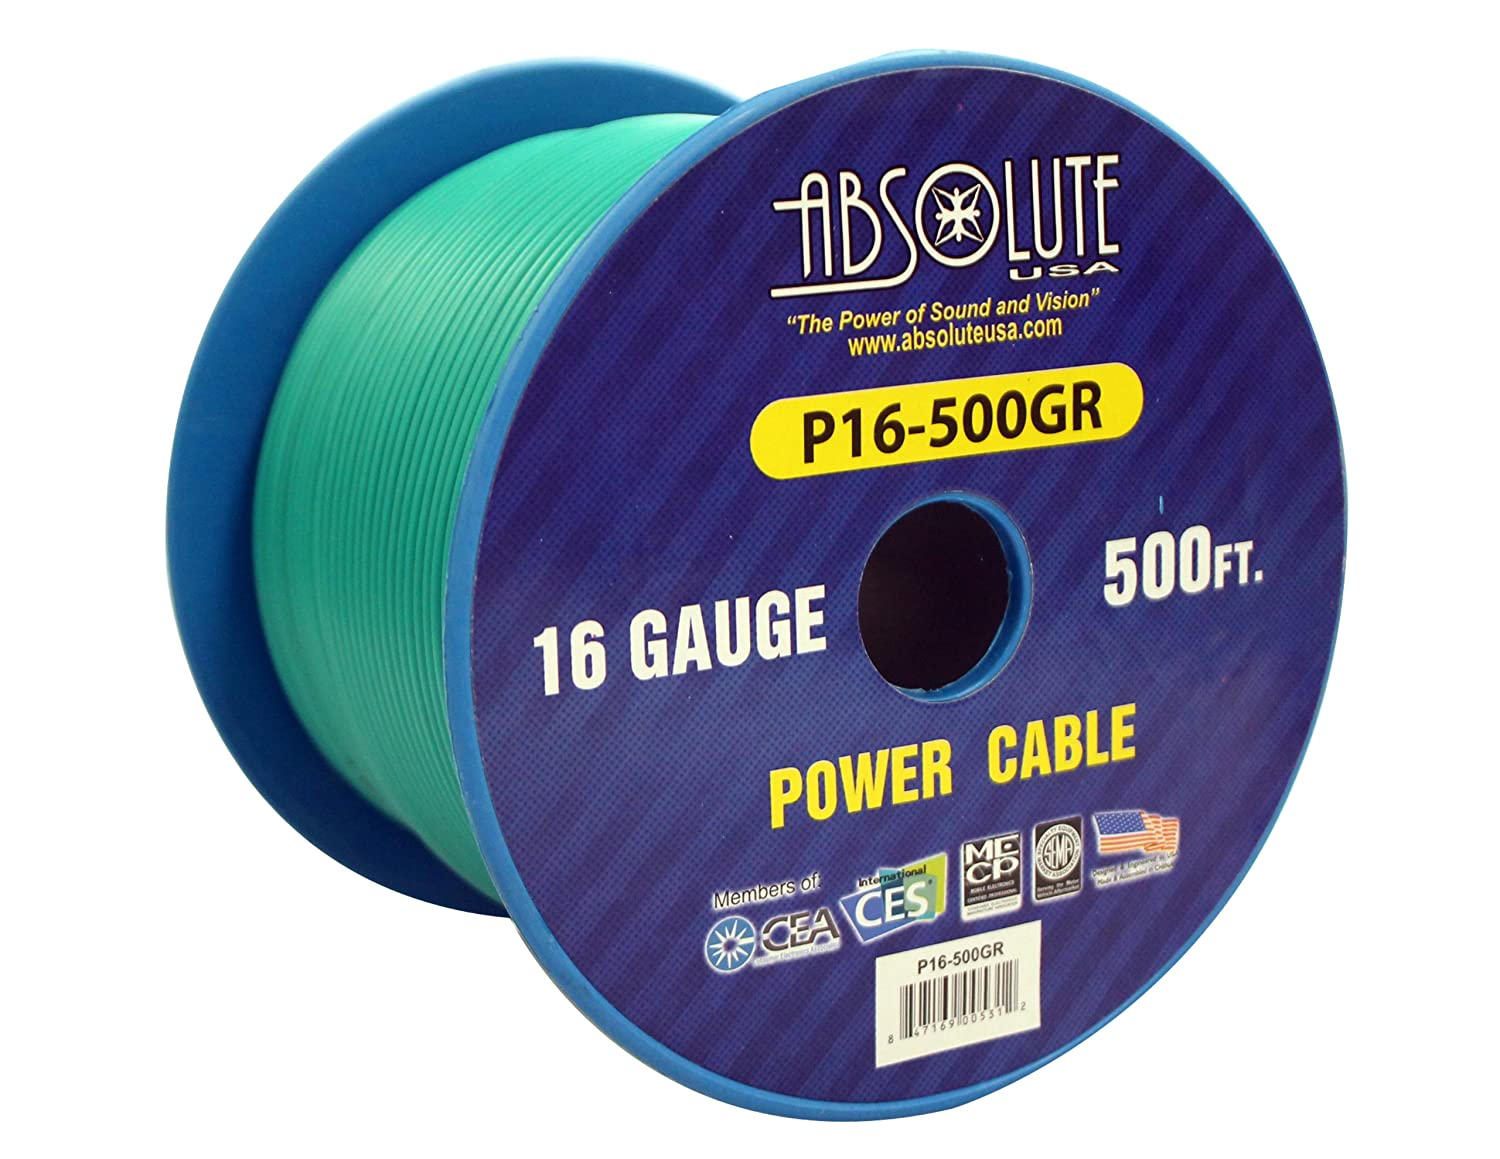 Absolute USA P16-500GR 16 Gauge 500-Feet Spool Primary Power Wire Cable Green